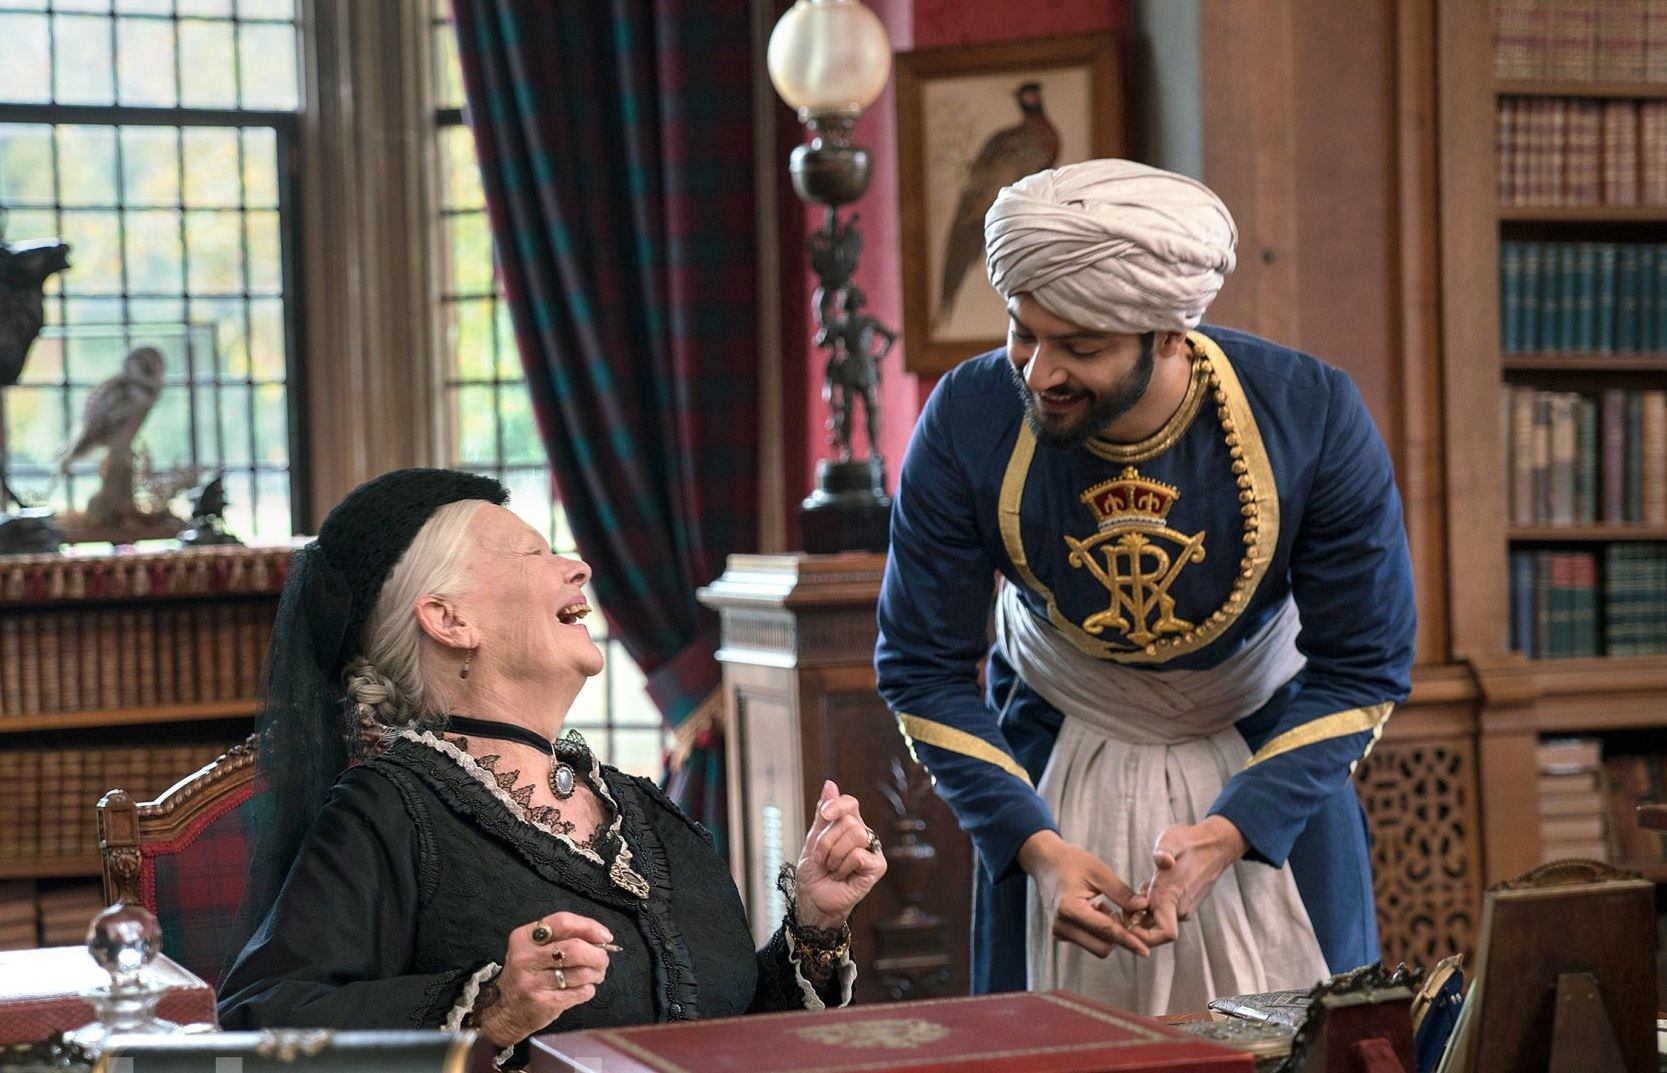 Victoria and Abdul Judi Dench (left) as Queen Victoria and Ali Fazal (right) as Abdul Karim